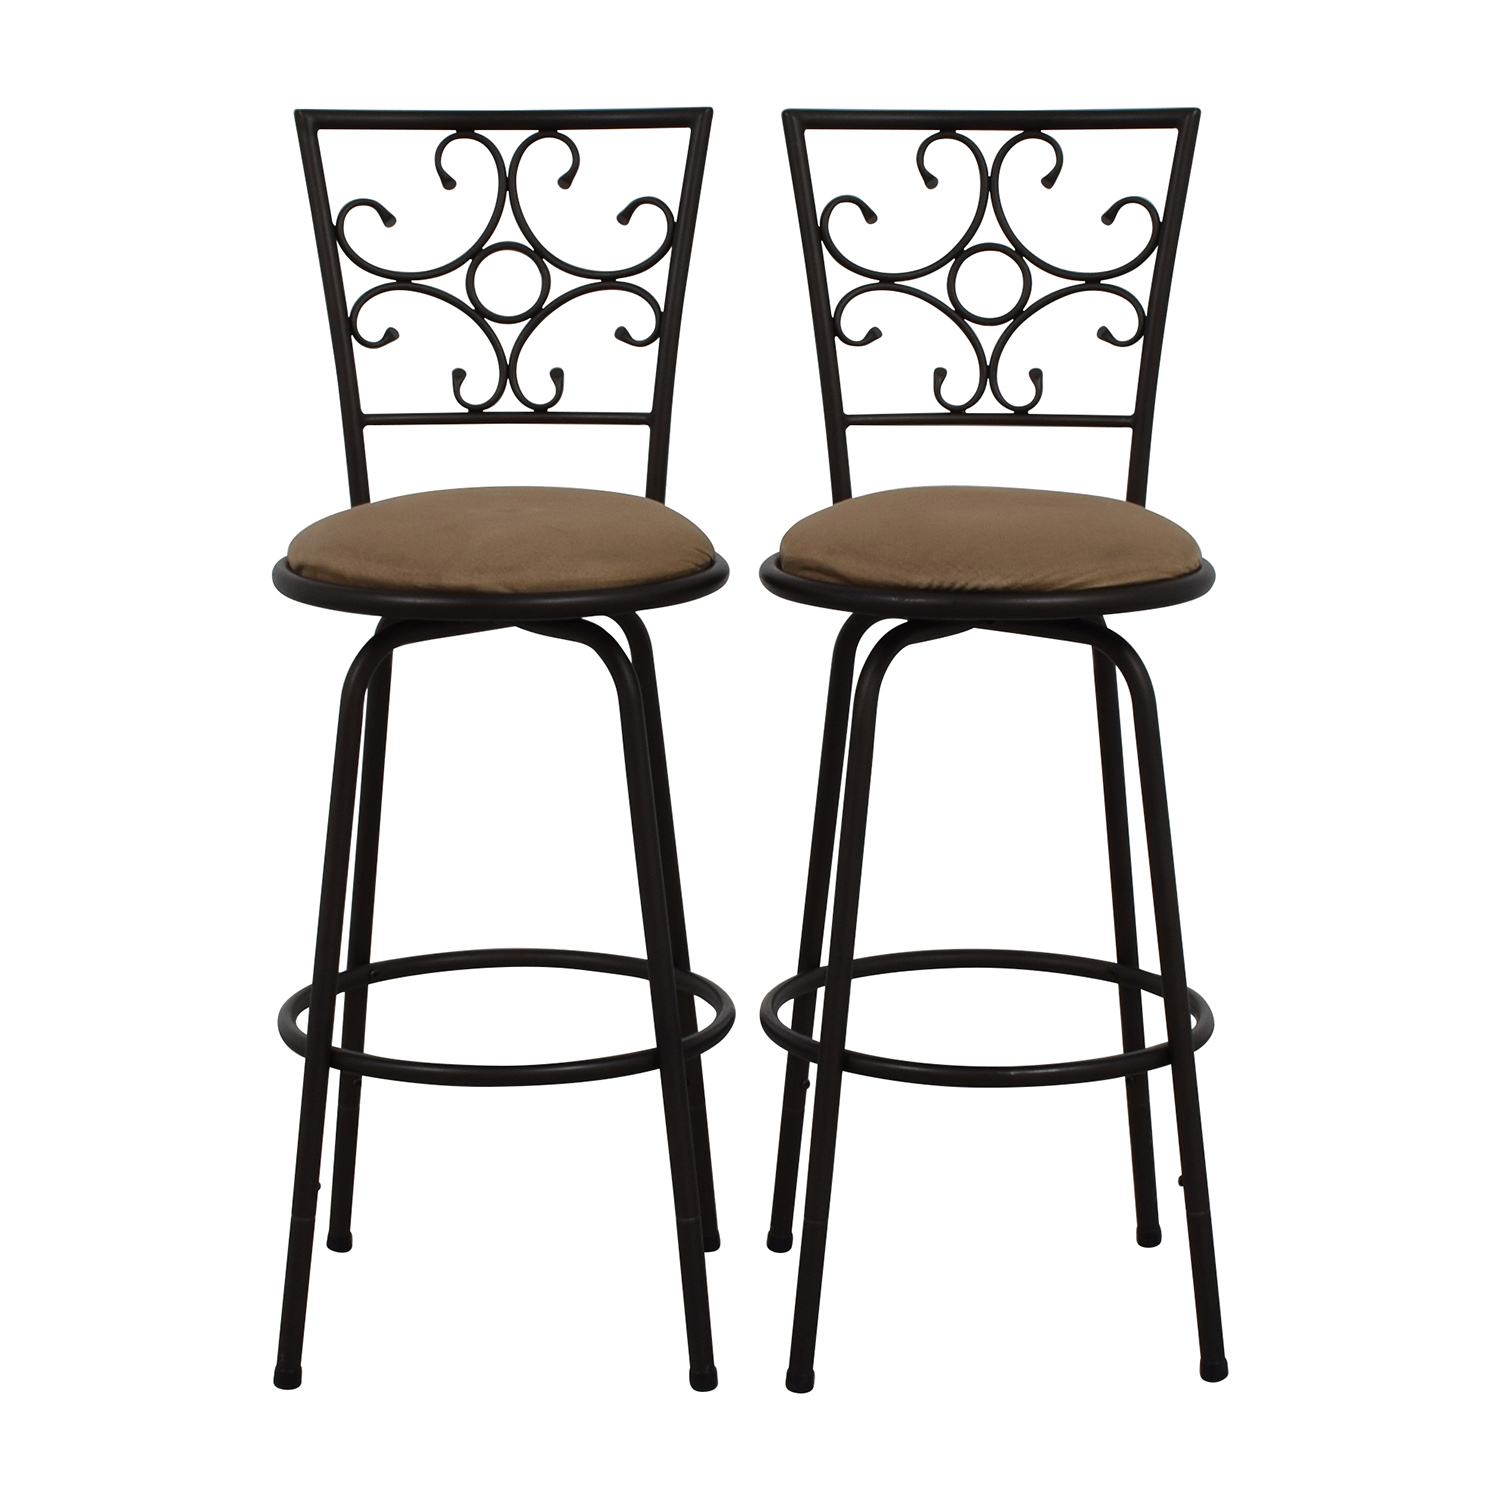 Pair of Black Iron Plush Bar Stools discount